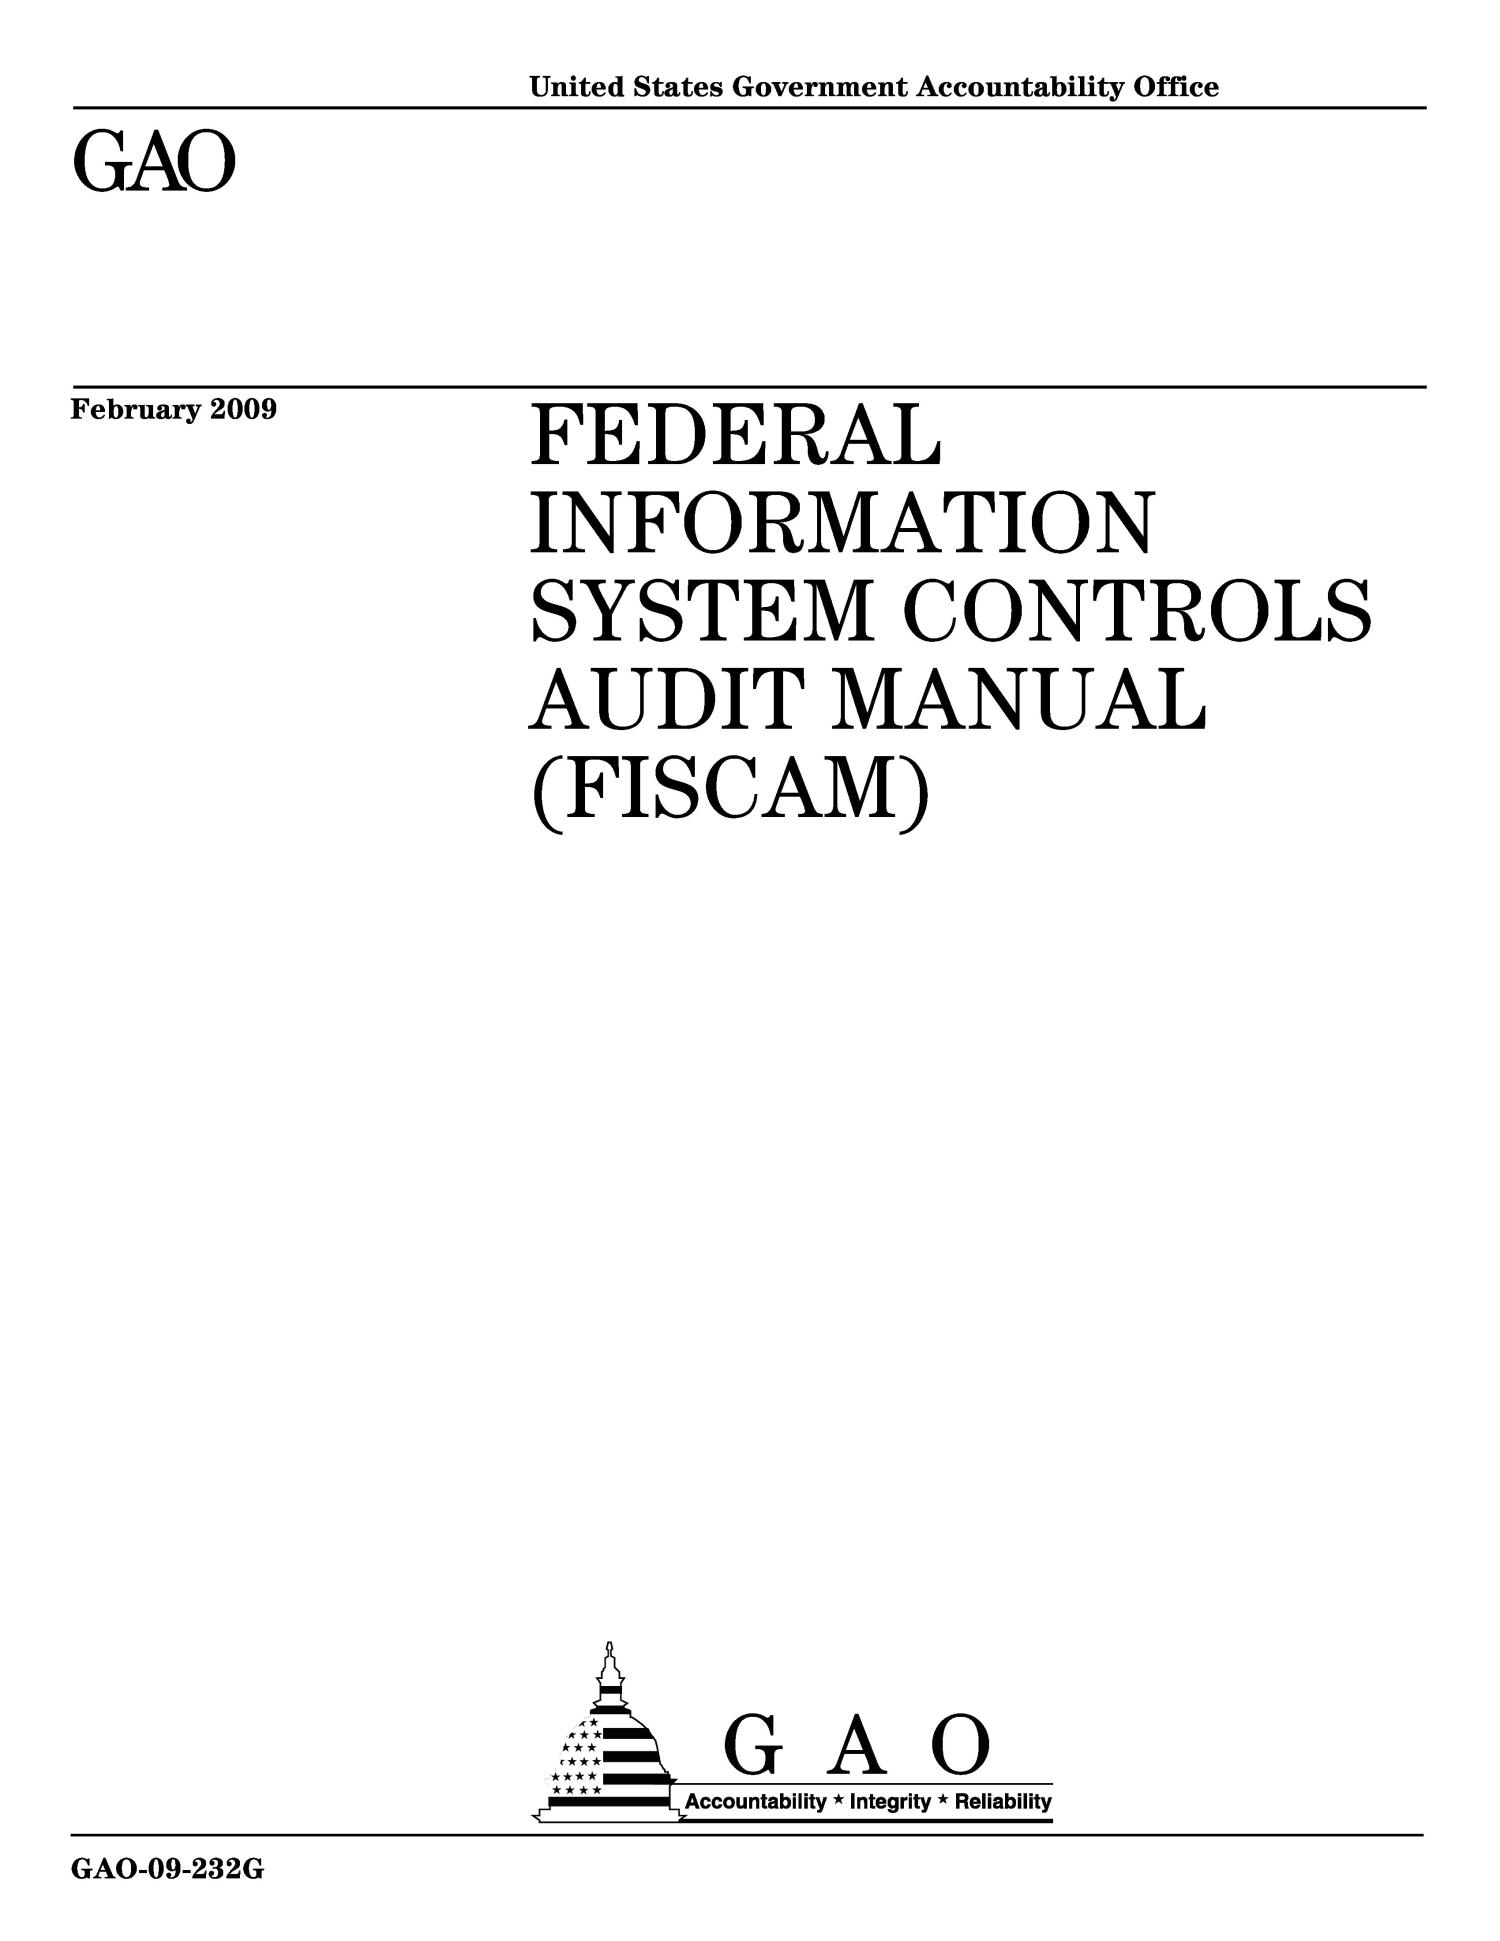 Federal Information System Controls Audit Manual (FISCAM